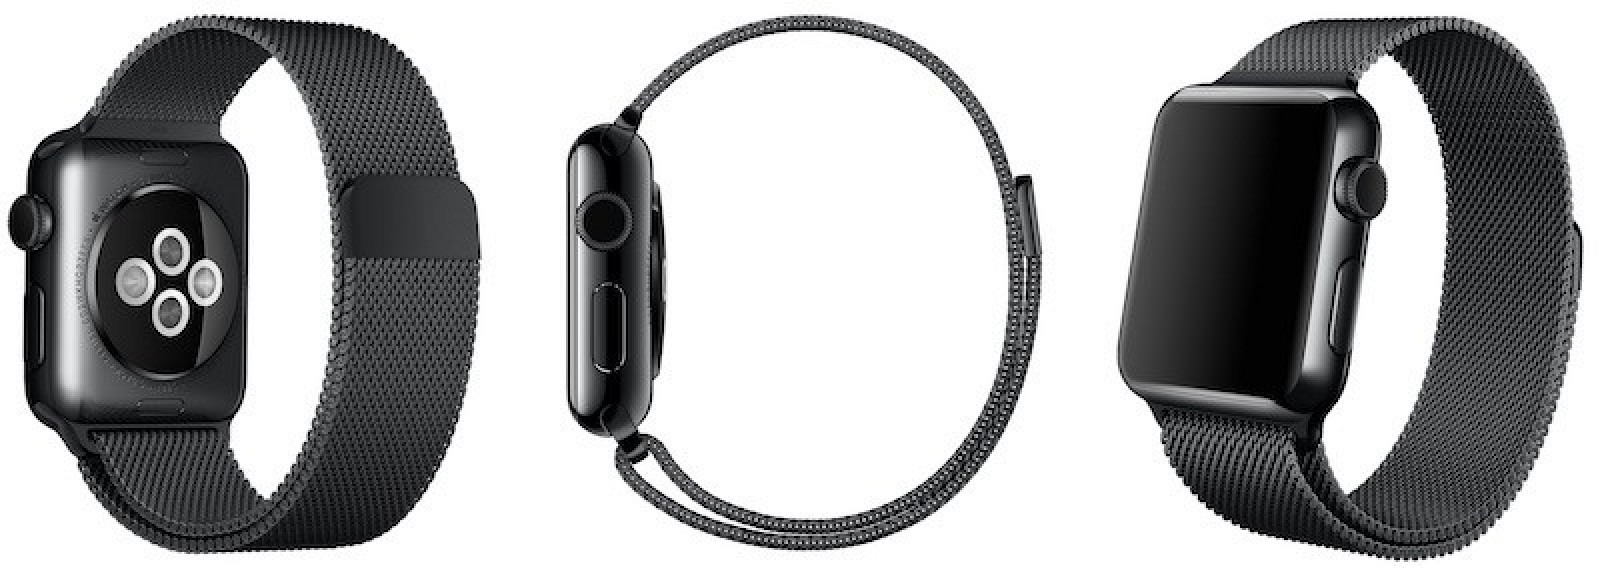 Space Black Milanese Loop Apple Watch Band Spotted on ...